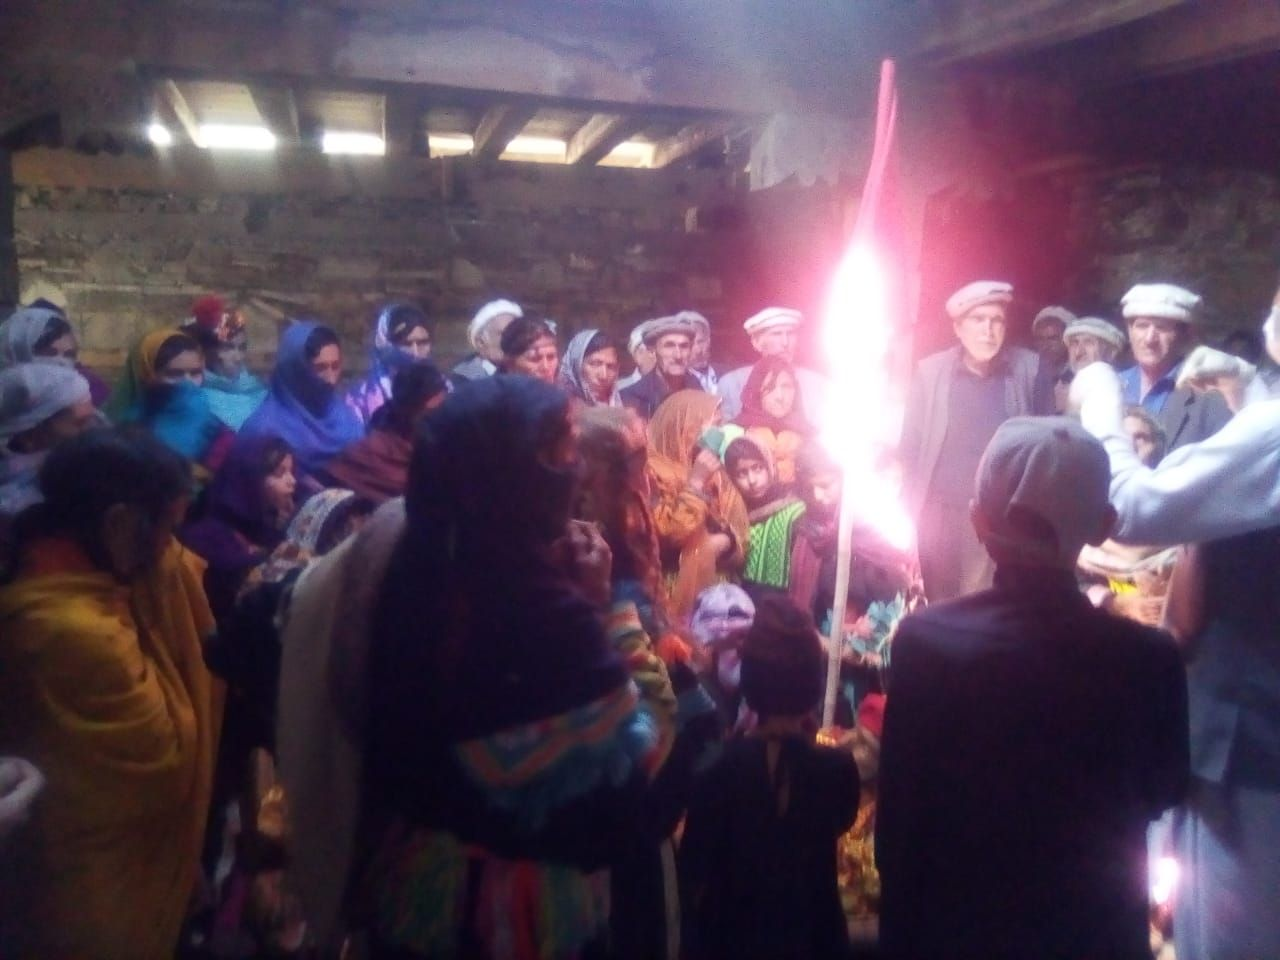 Kalash Valley grieves for their leader